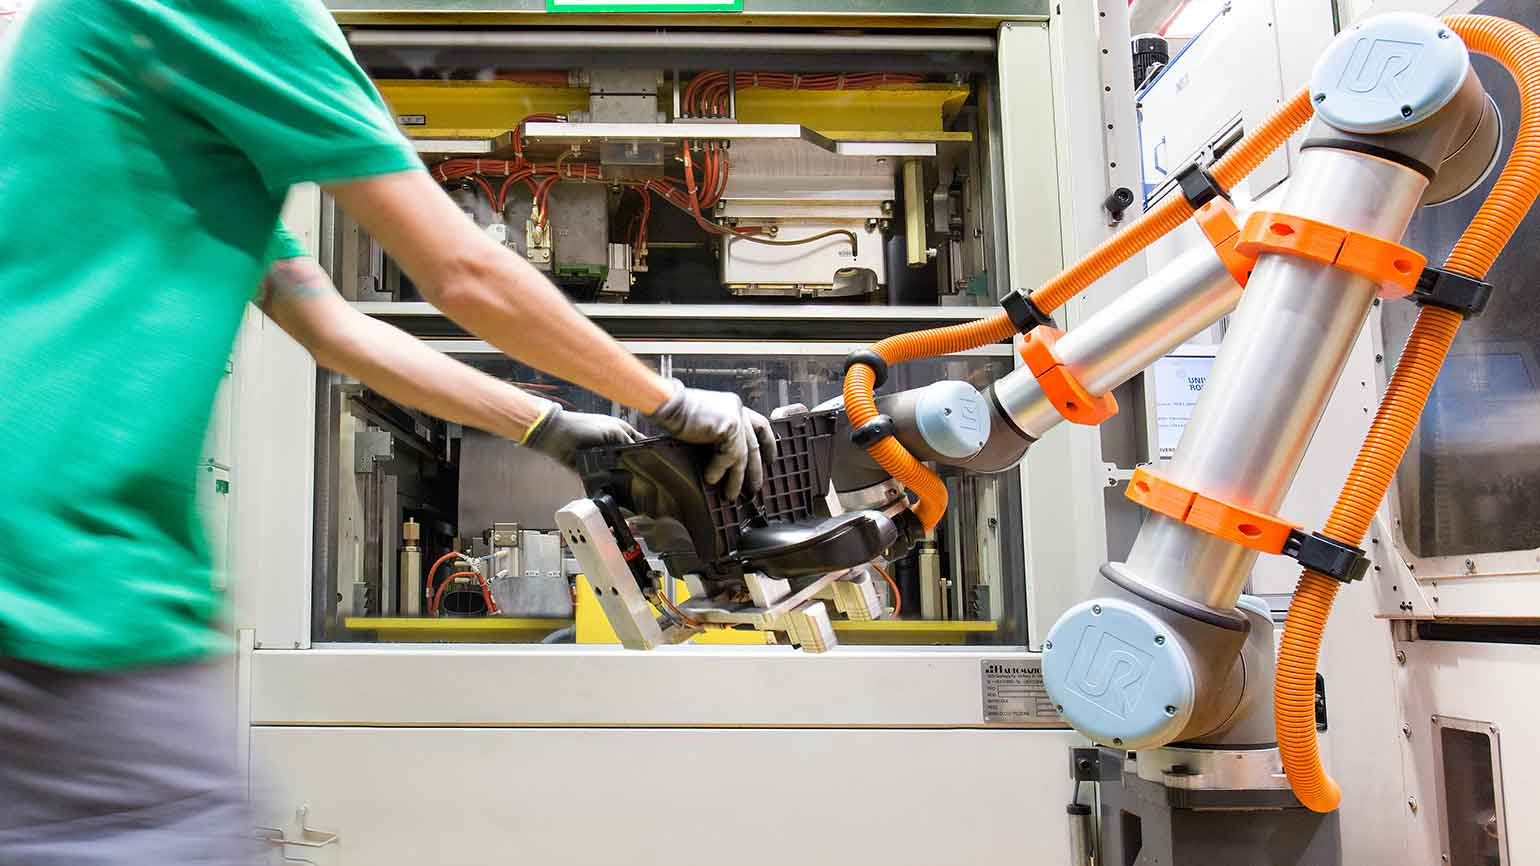 Safety sensors create harmonized workspaces for robots and humans